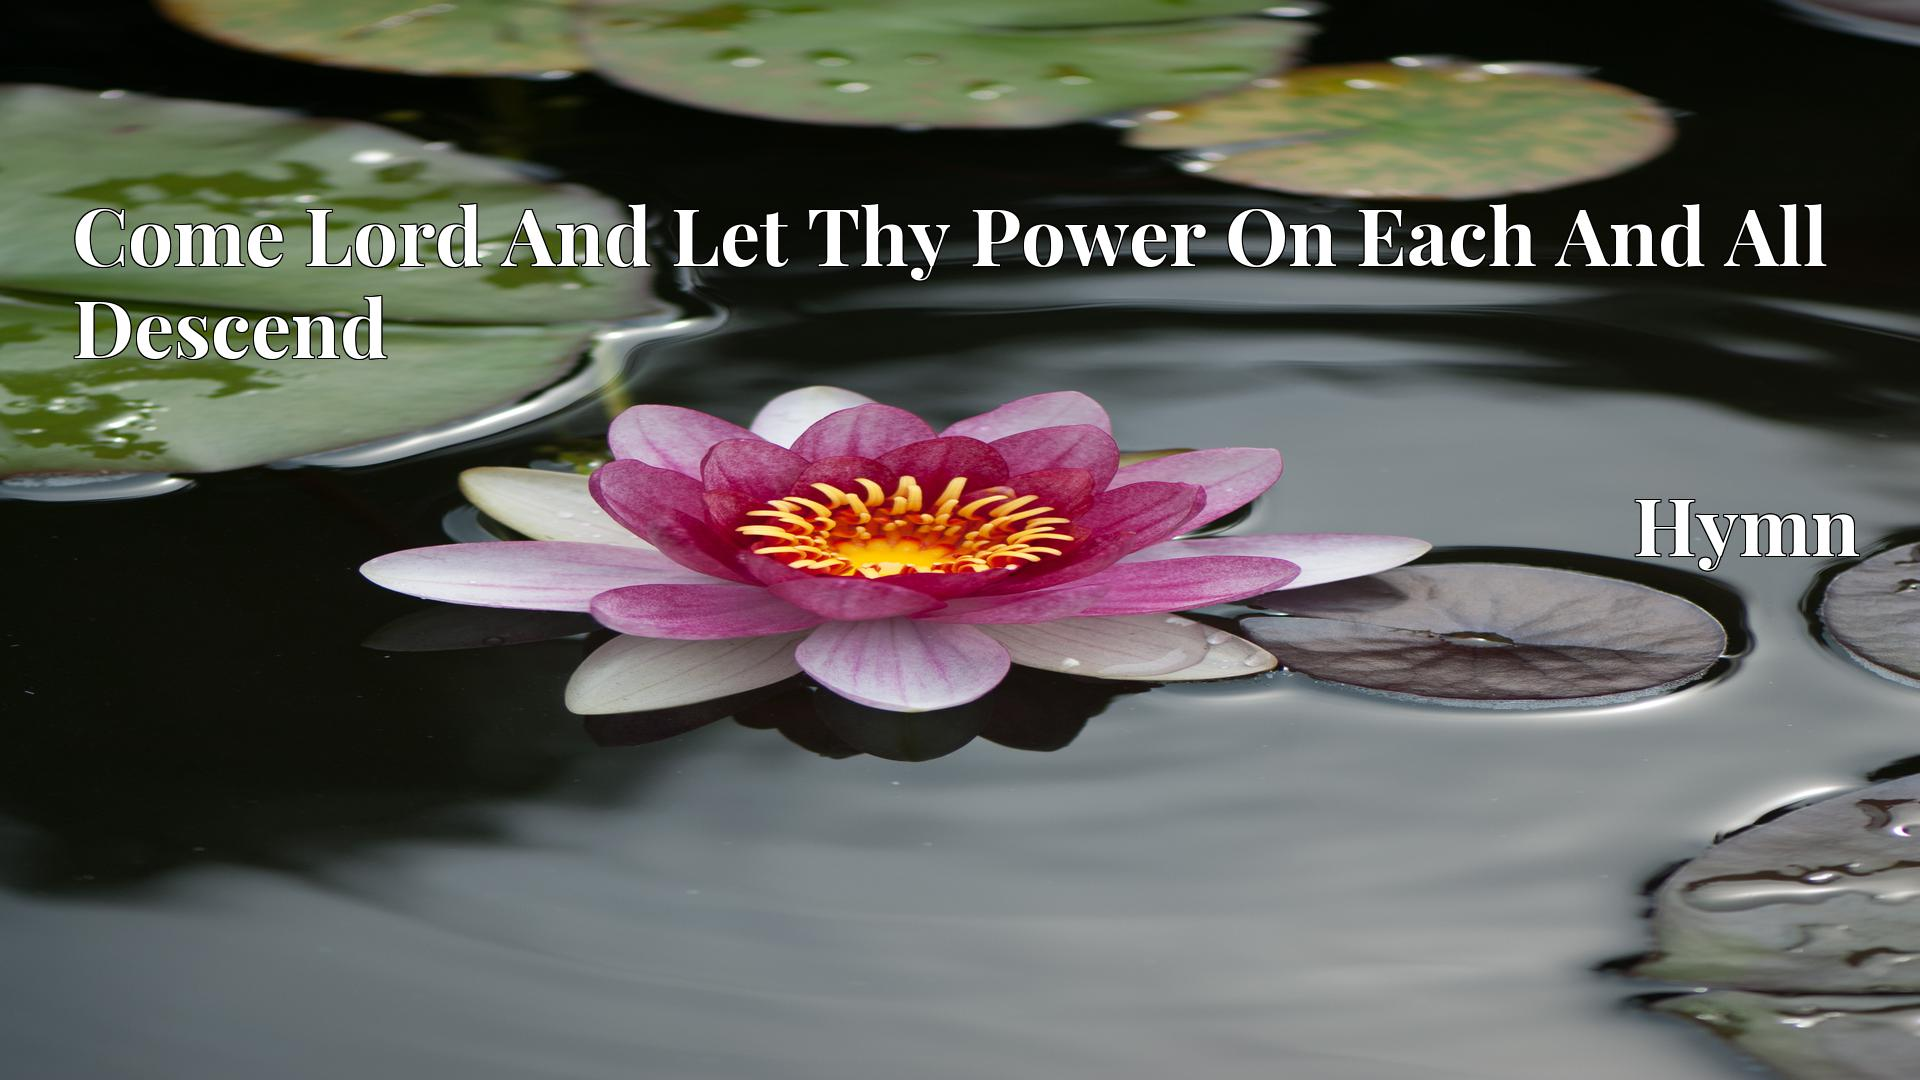 Come Lord And Let Thy Power On Each And All Descend Hymn Lyric